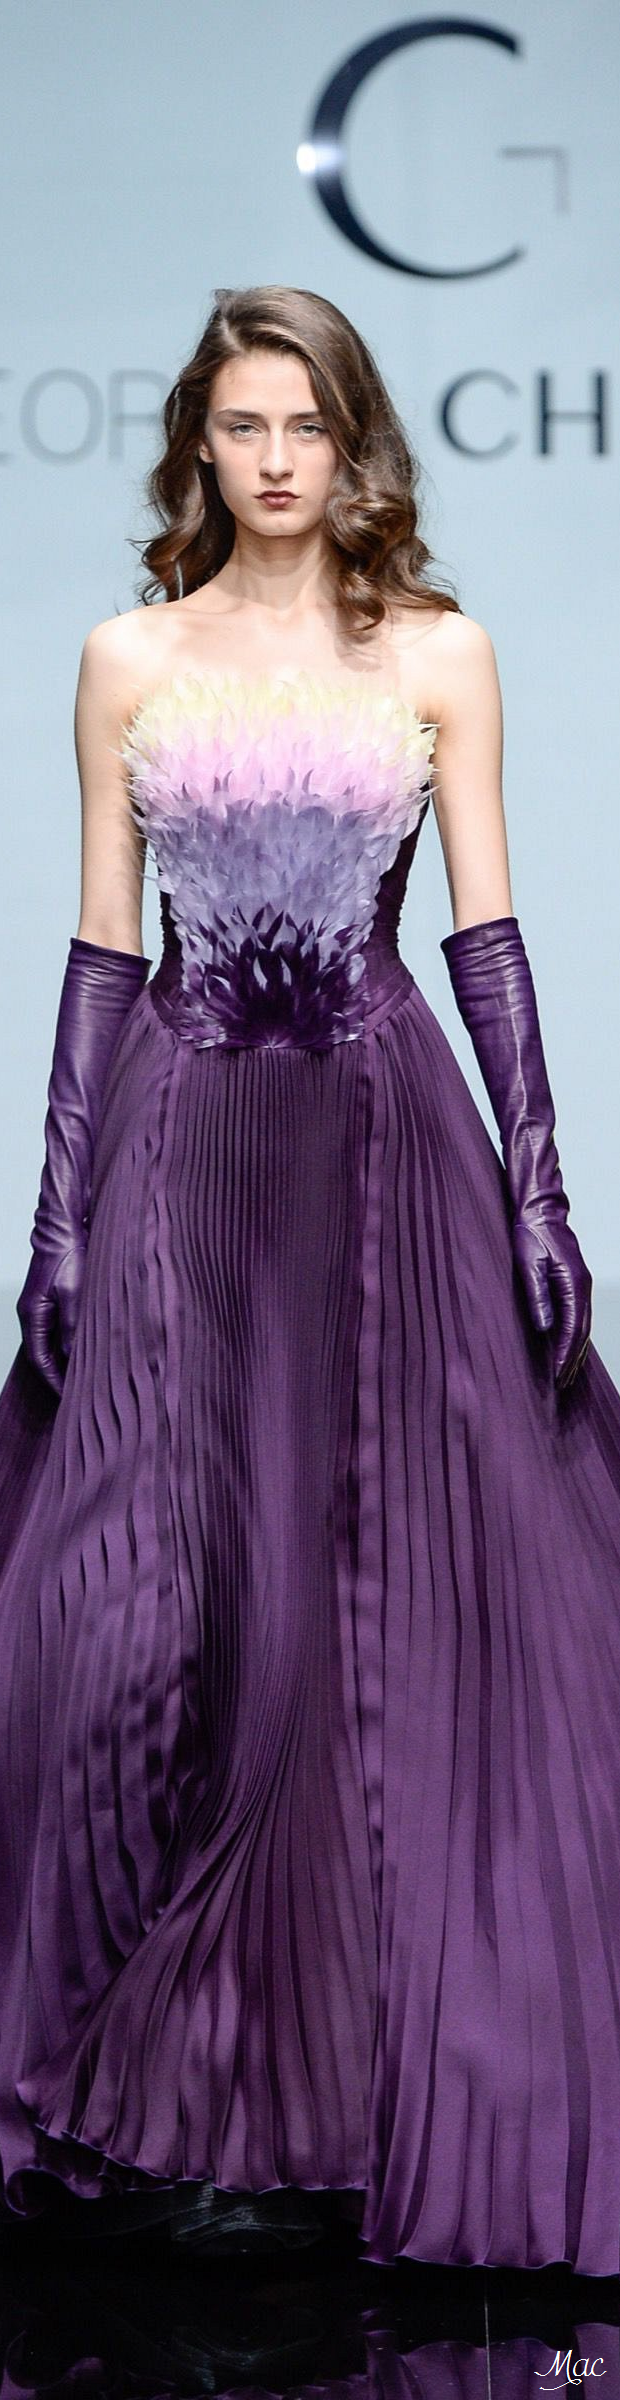 Fall 2016 Haute Couture - Georges Chakra